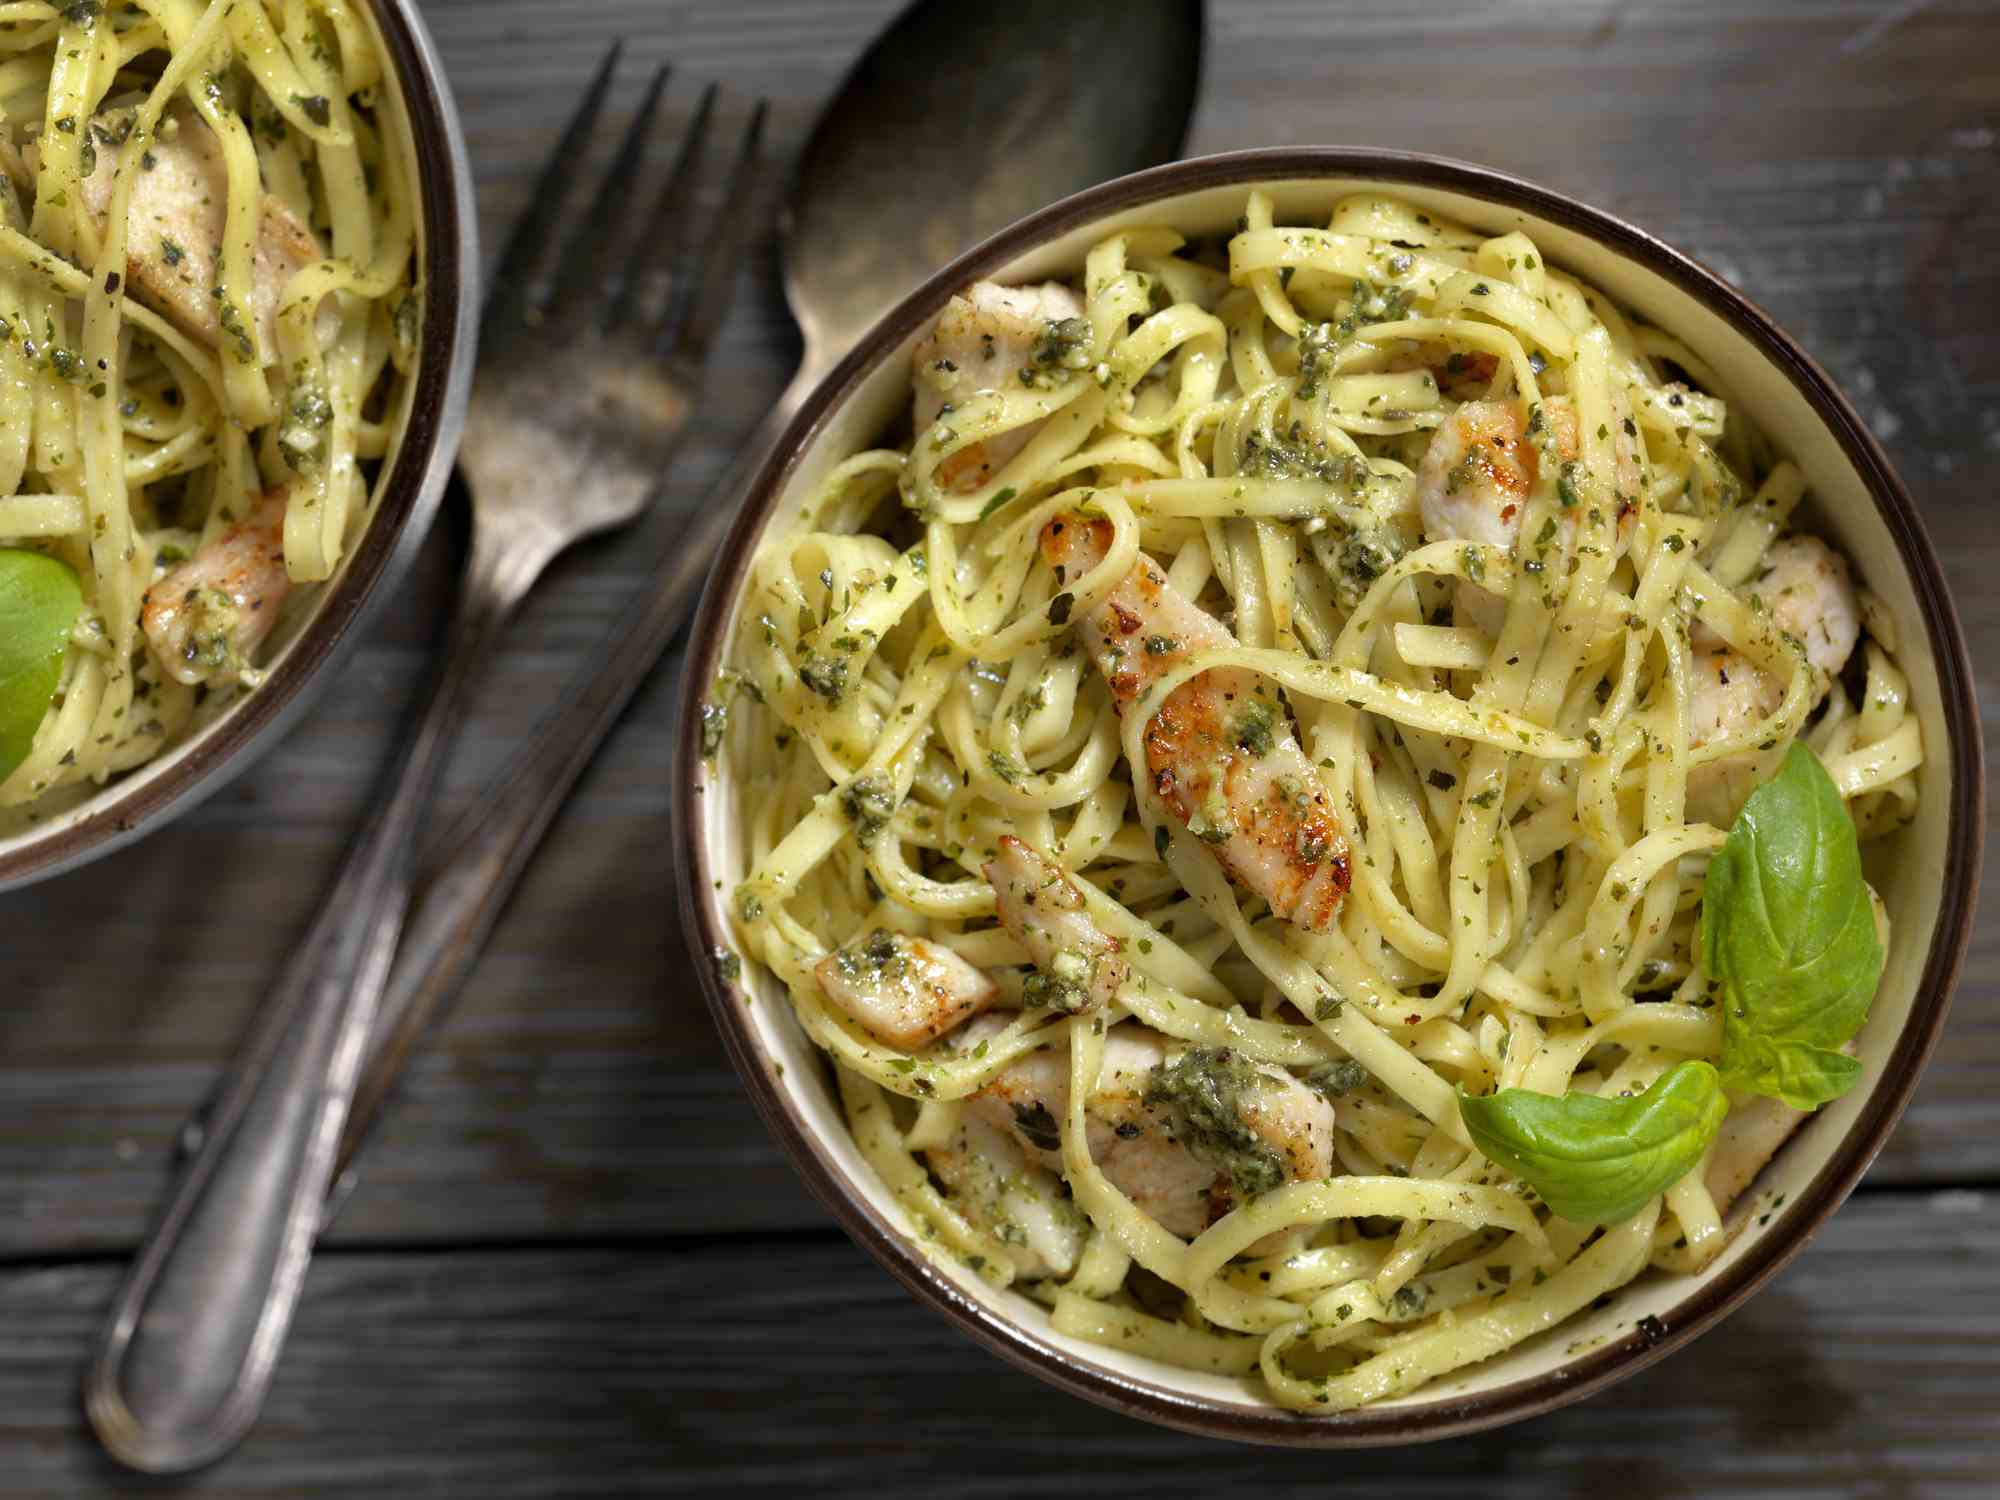 Linguine with grilled chicken and basil pesto